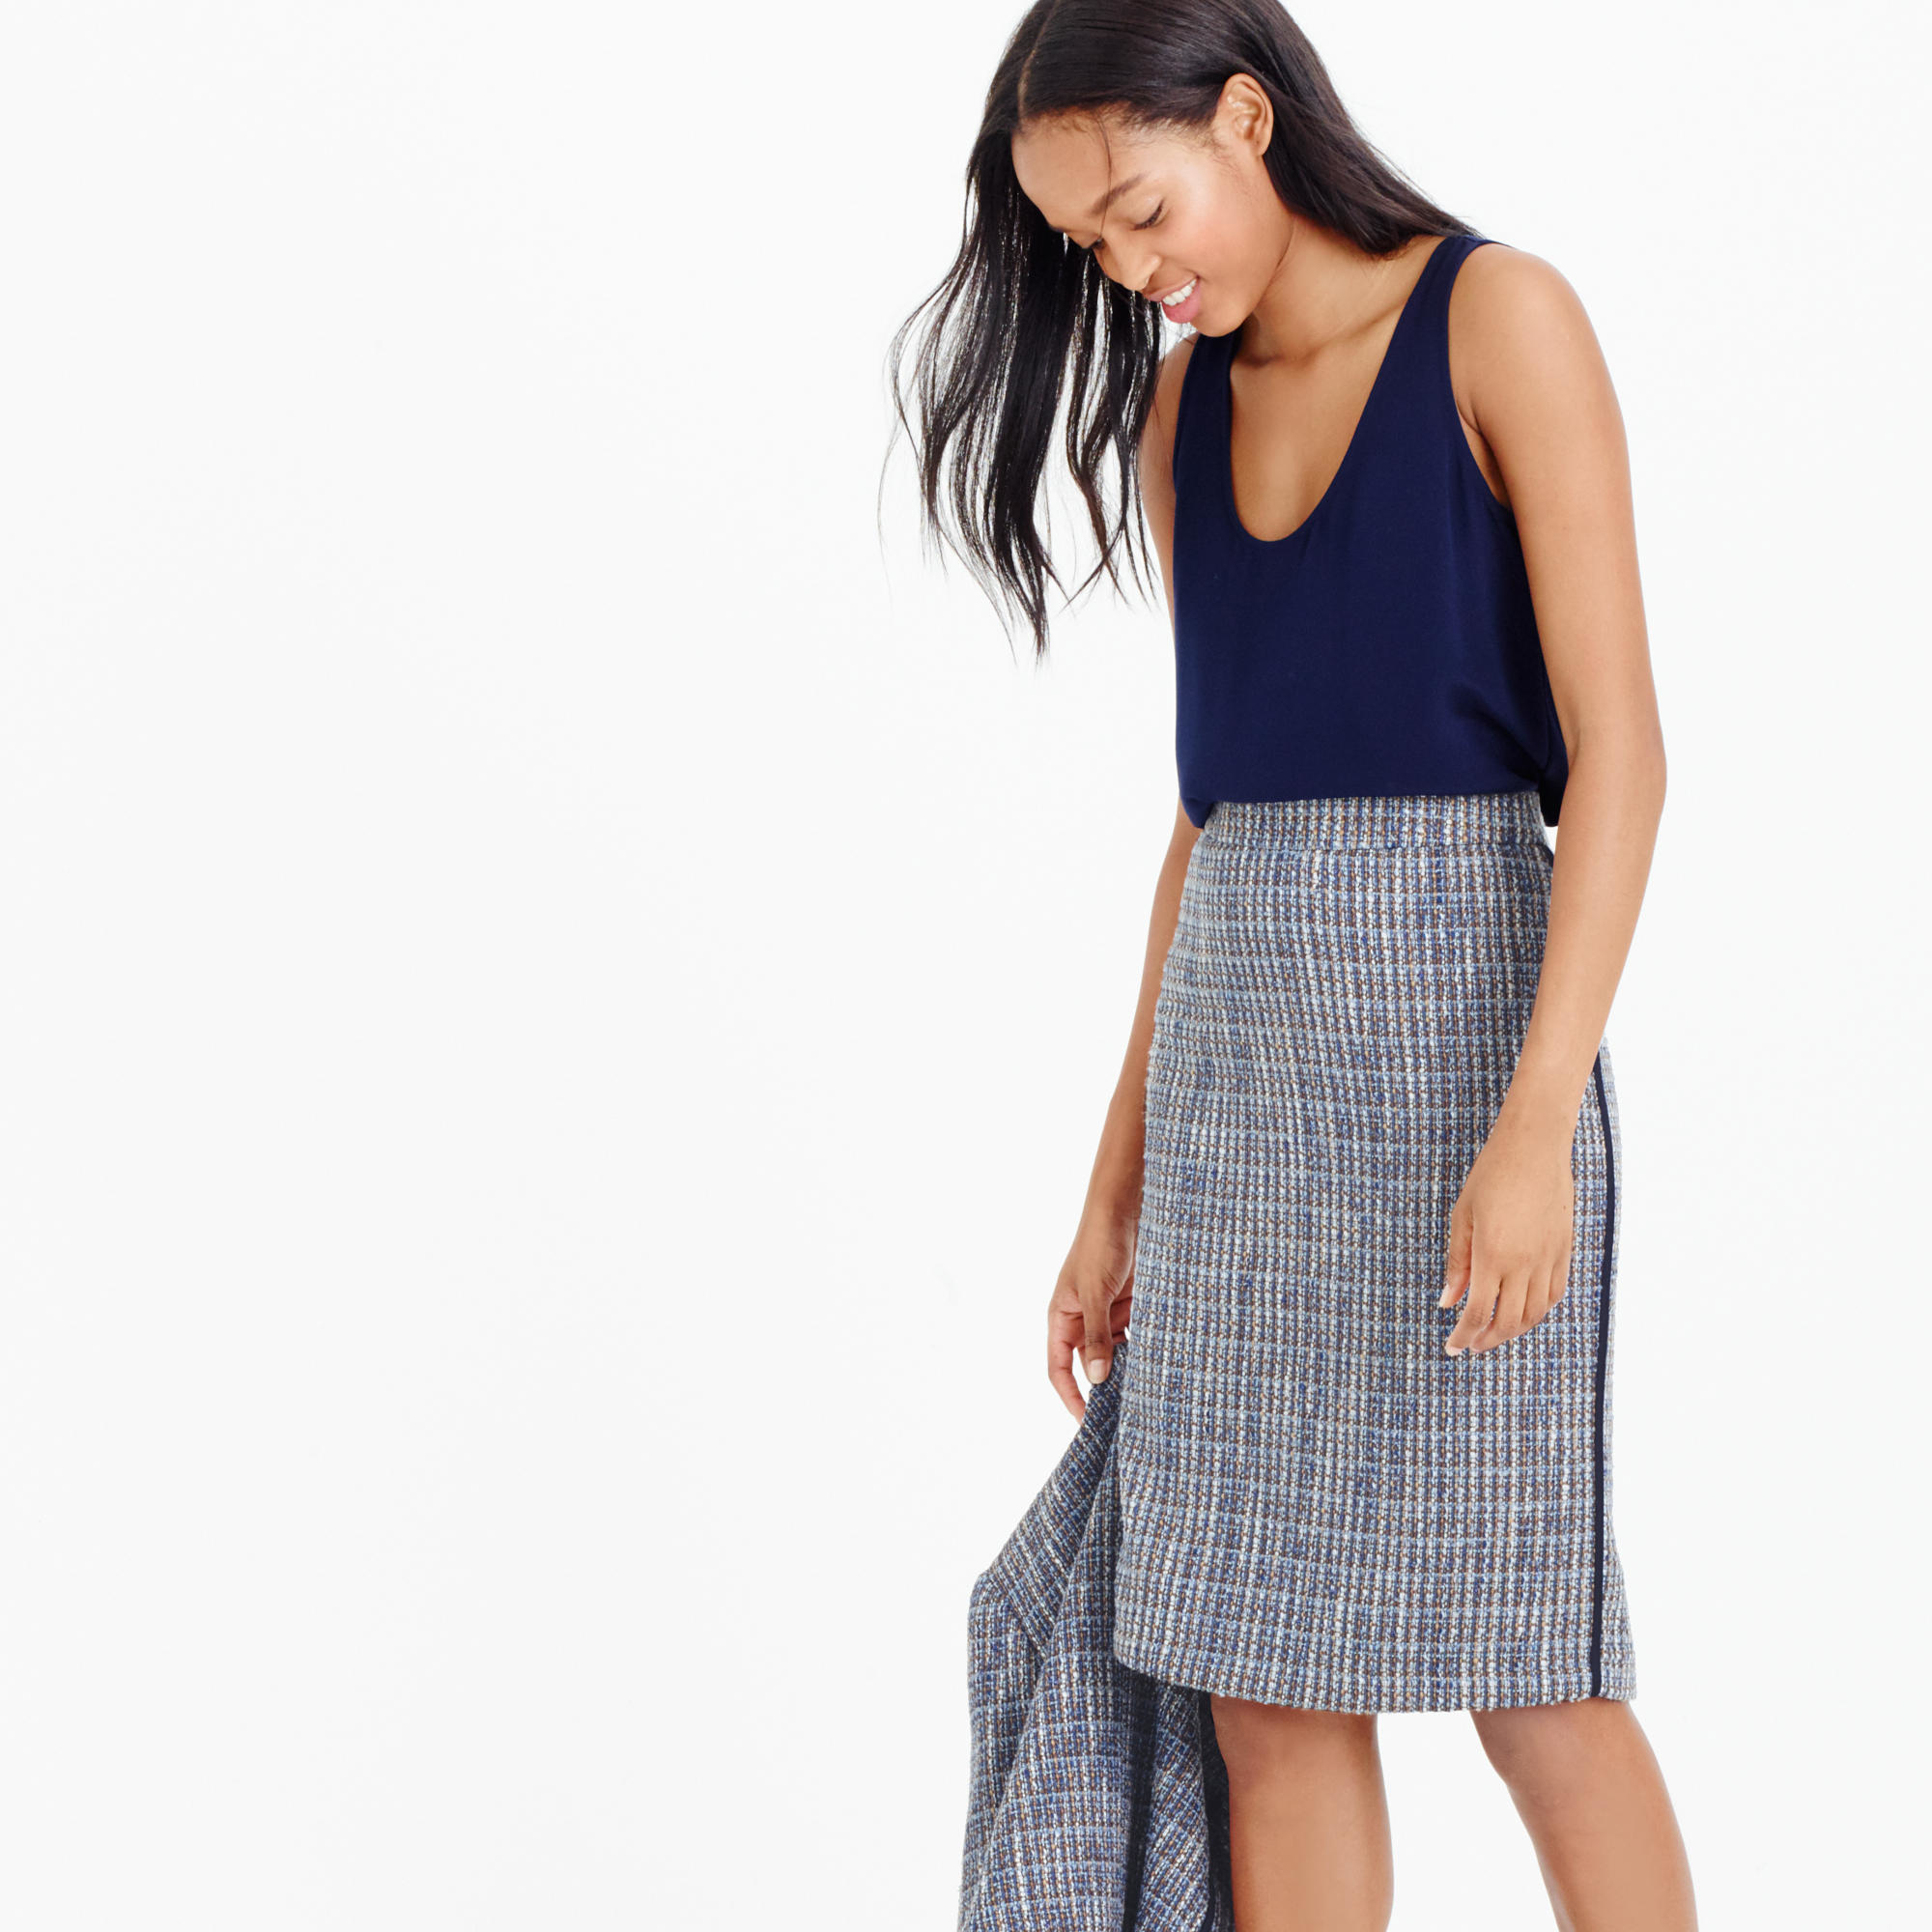 261adc757 J.Crew Pencil Skirt In Flecked Tweed in Blue - Lyst